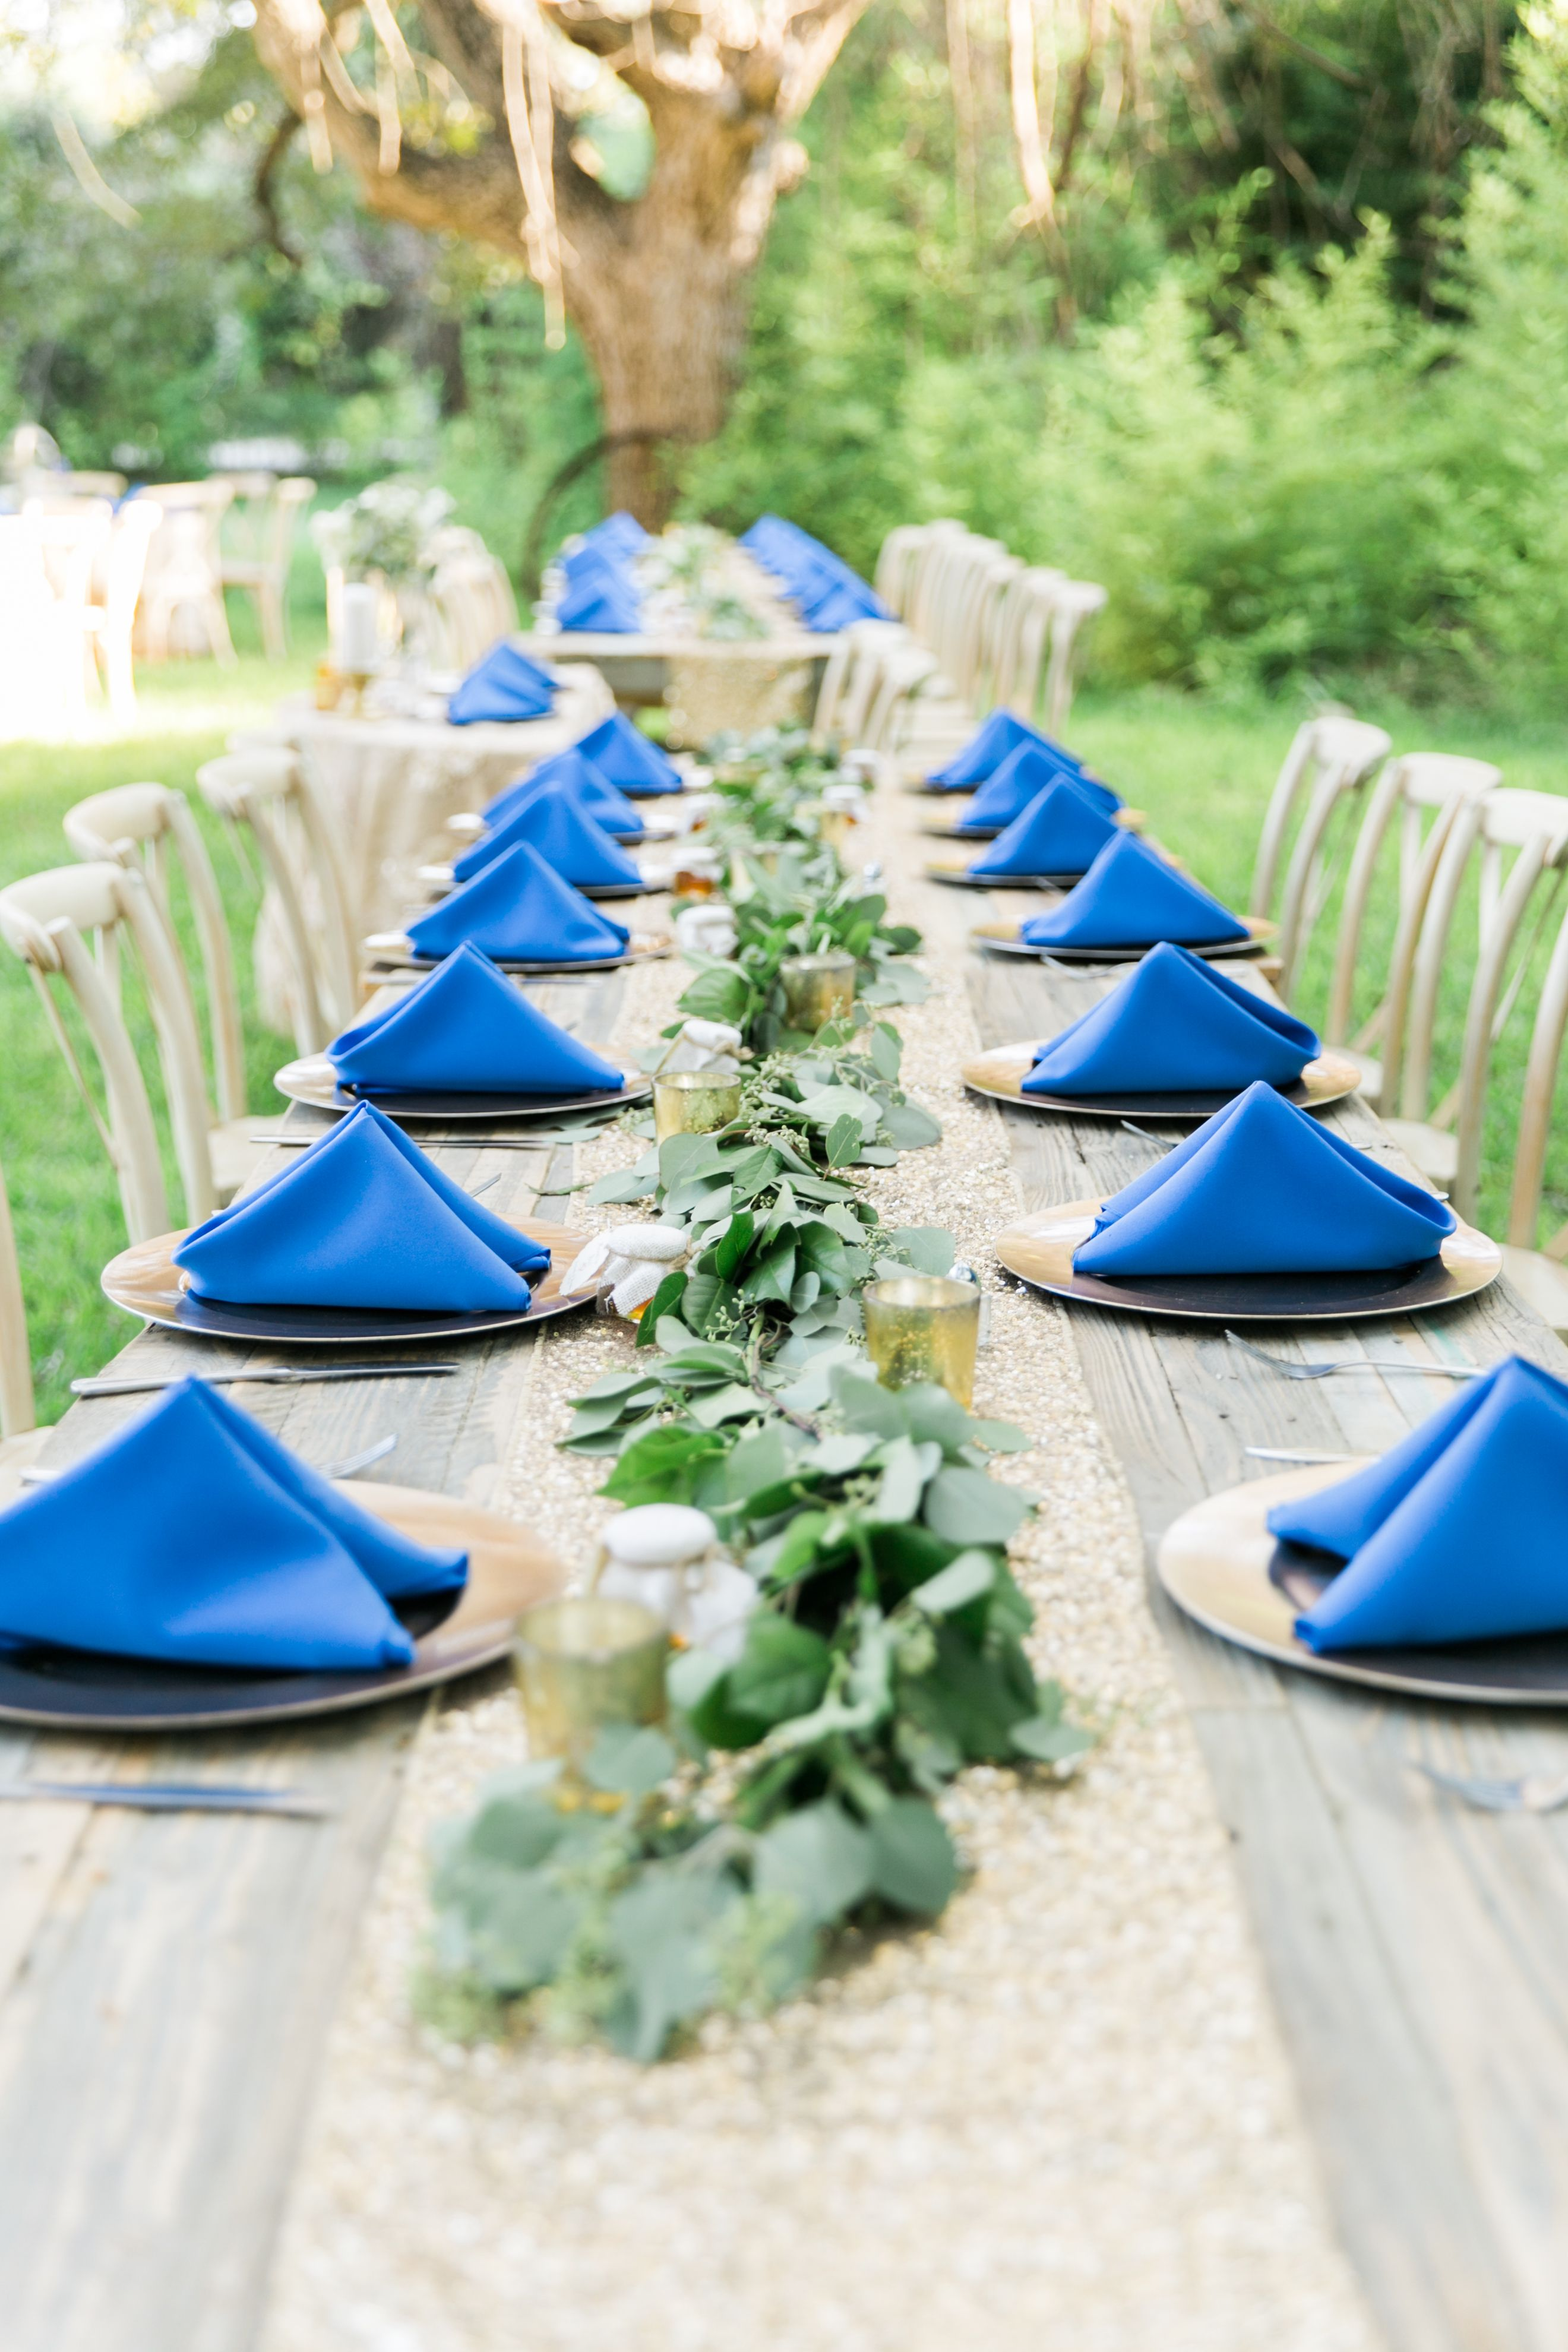 Gorgeous Dining Setting For A Rustic Chic Wedding Wedding Ideas